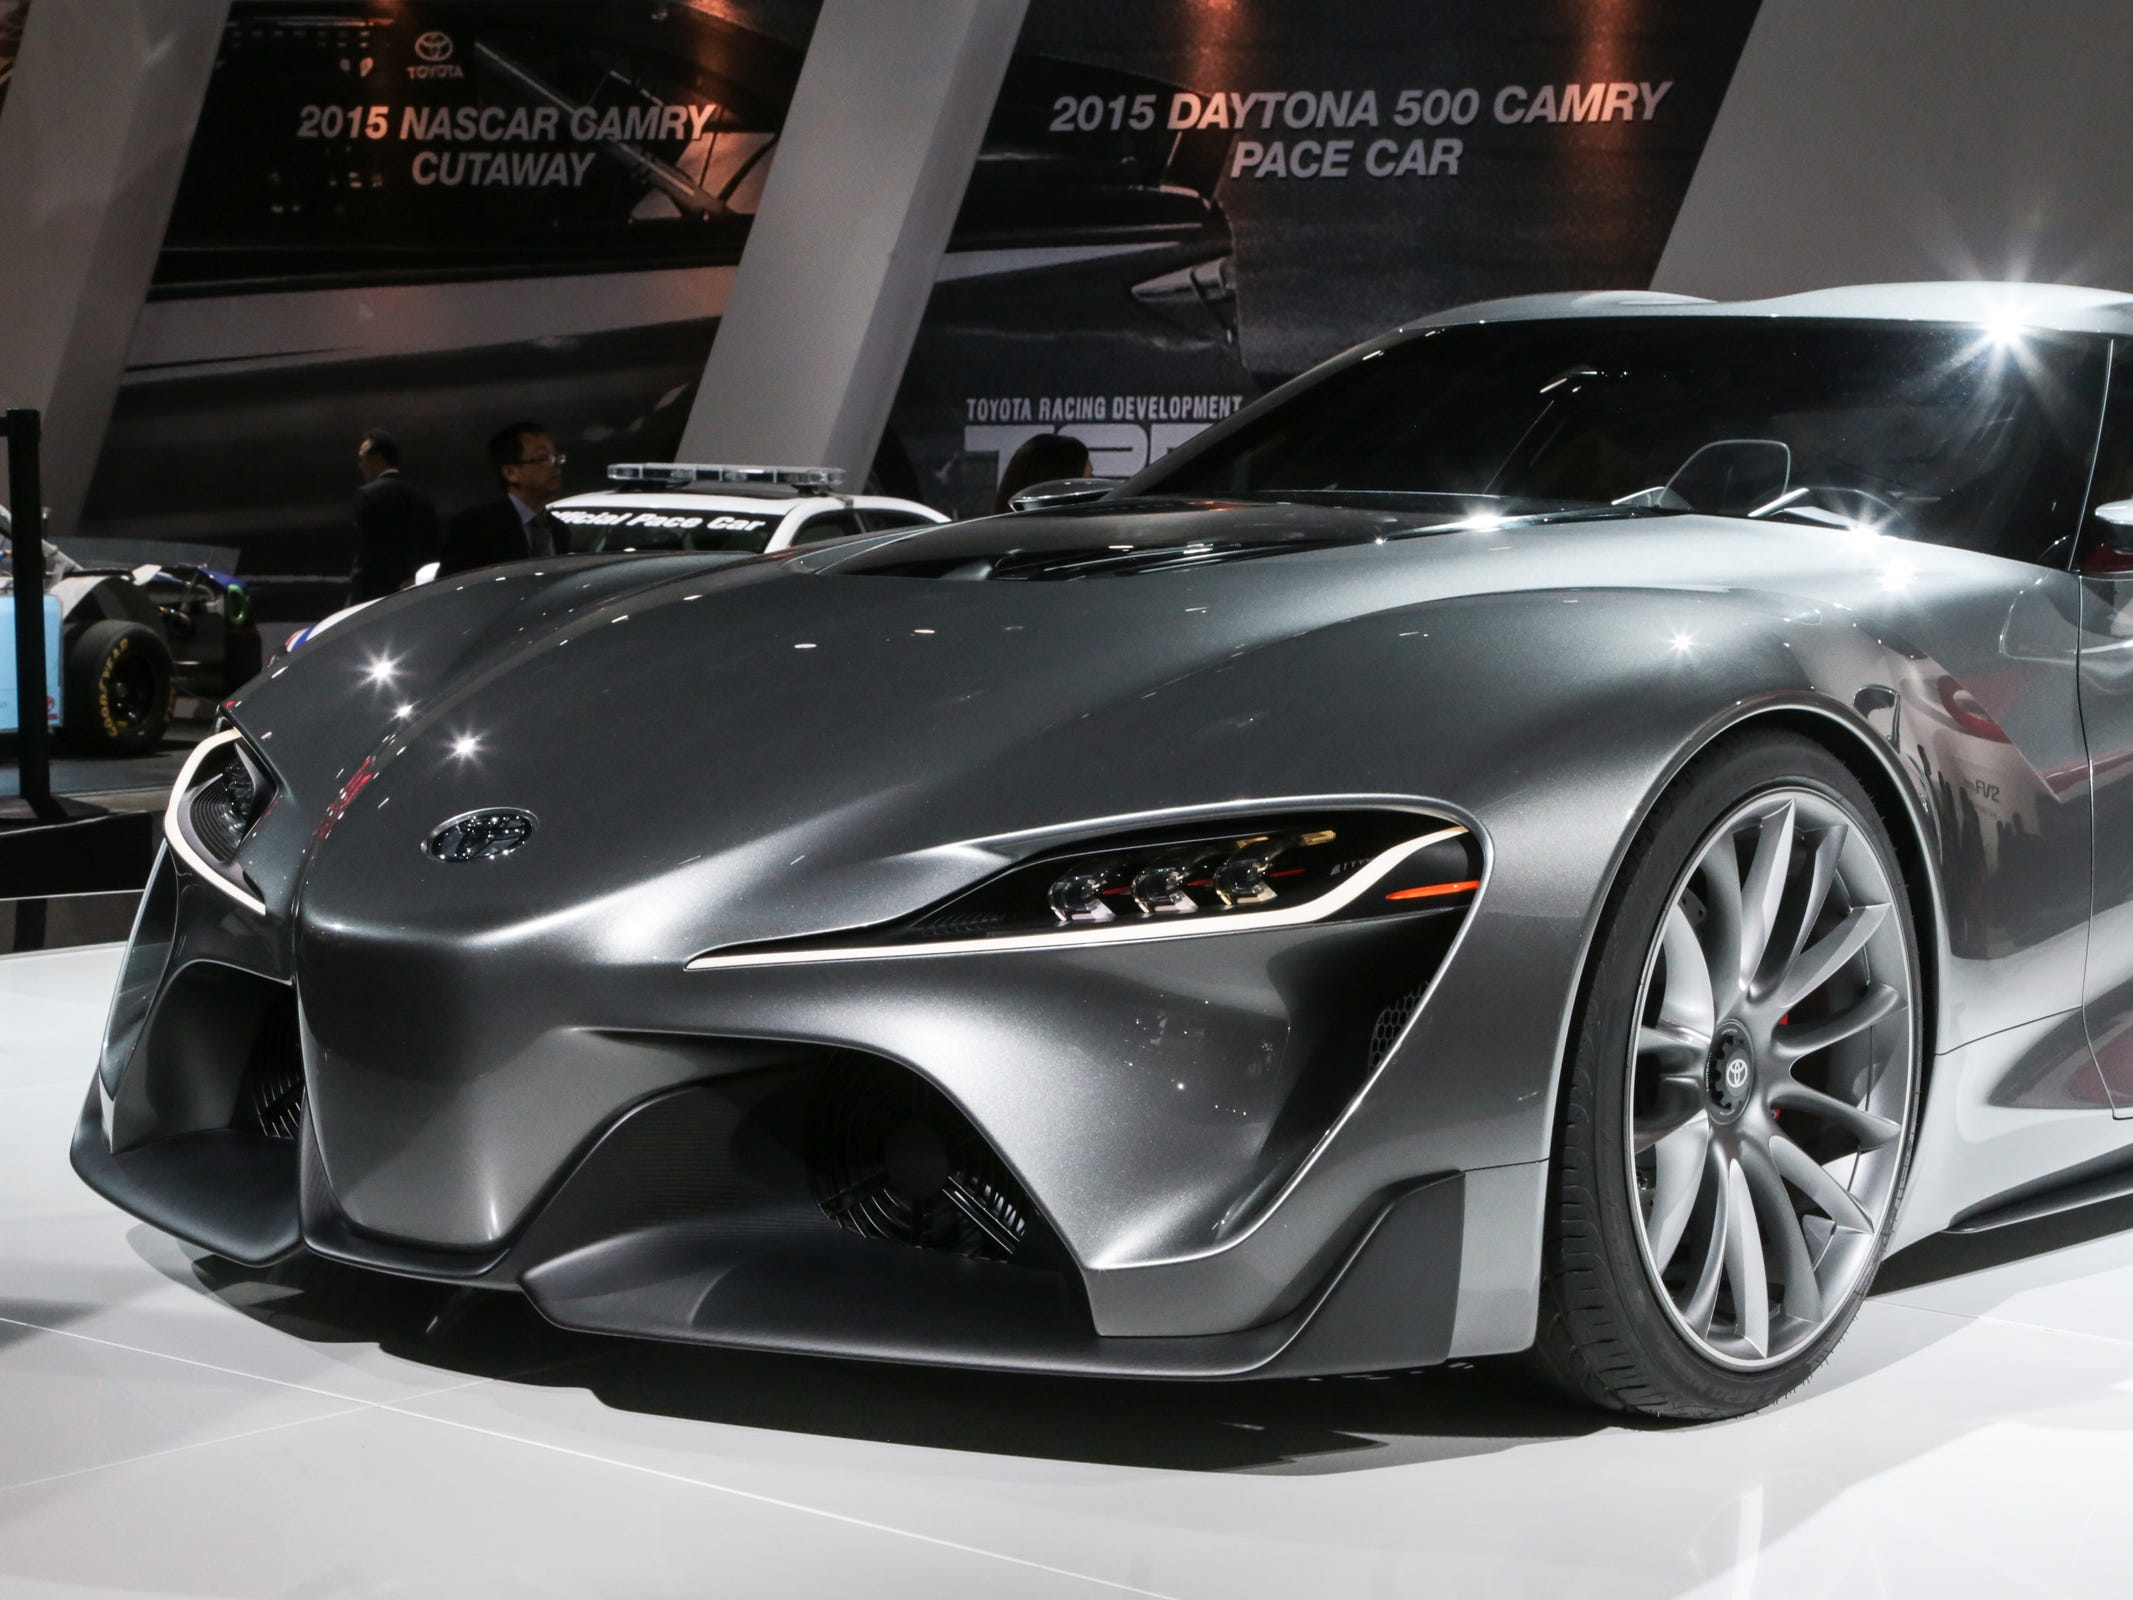 The Toyota FT-1 concept is seen on stage during the 2015 North American International Auto Show at Cobo Center on Monday, Jan.12, 2015 in Detroit.